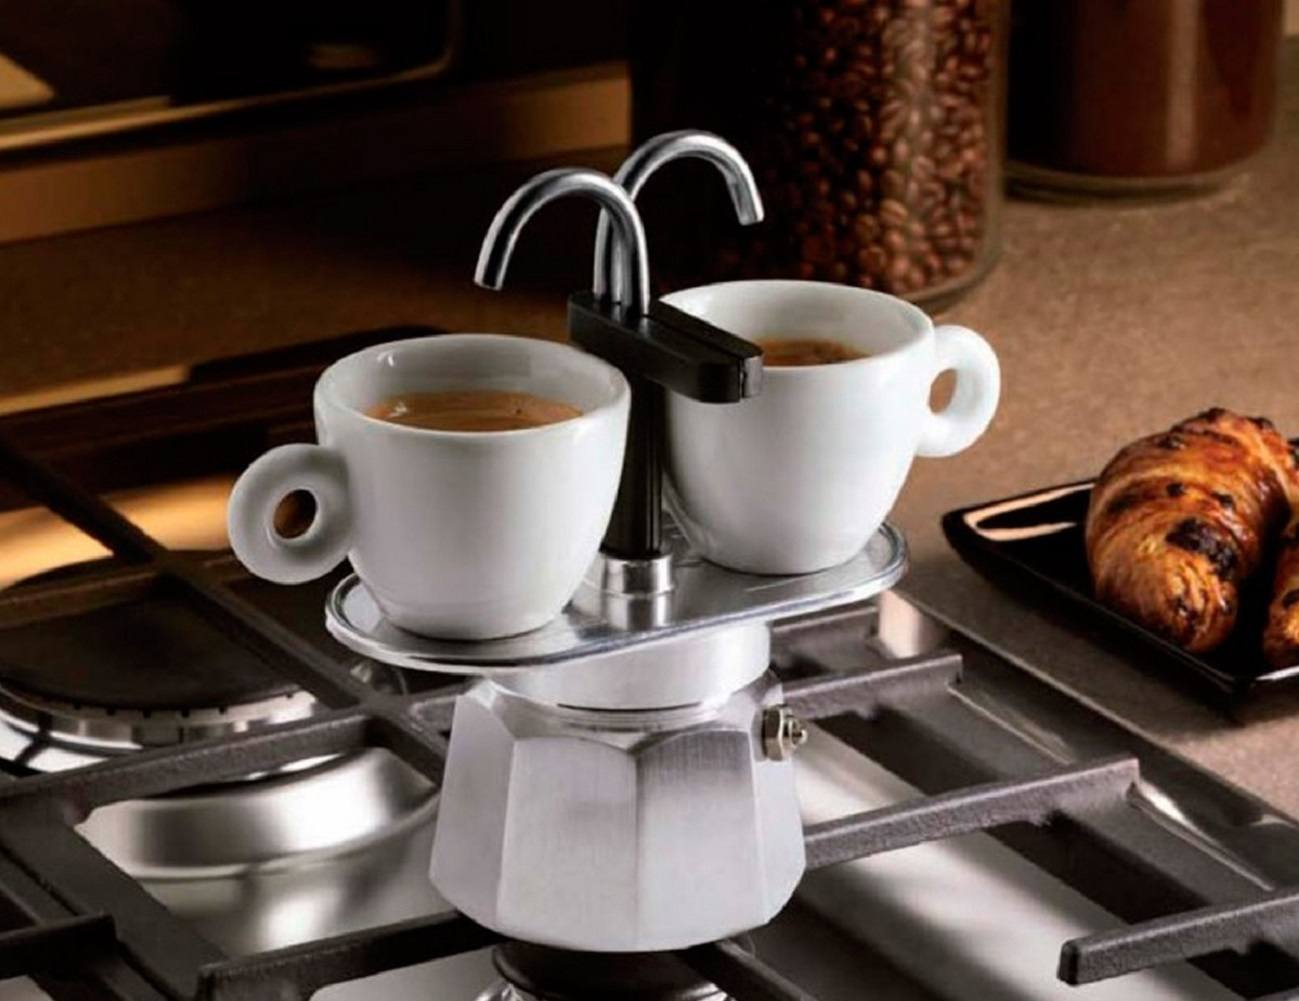 Bialetti Mini Express 2-Cup Stovetop Percolator